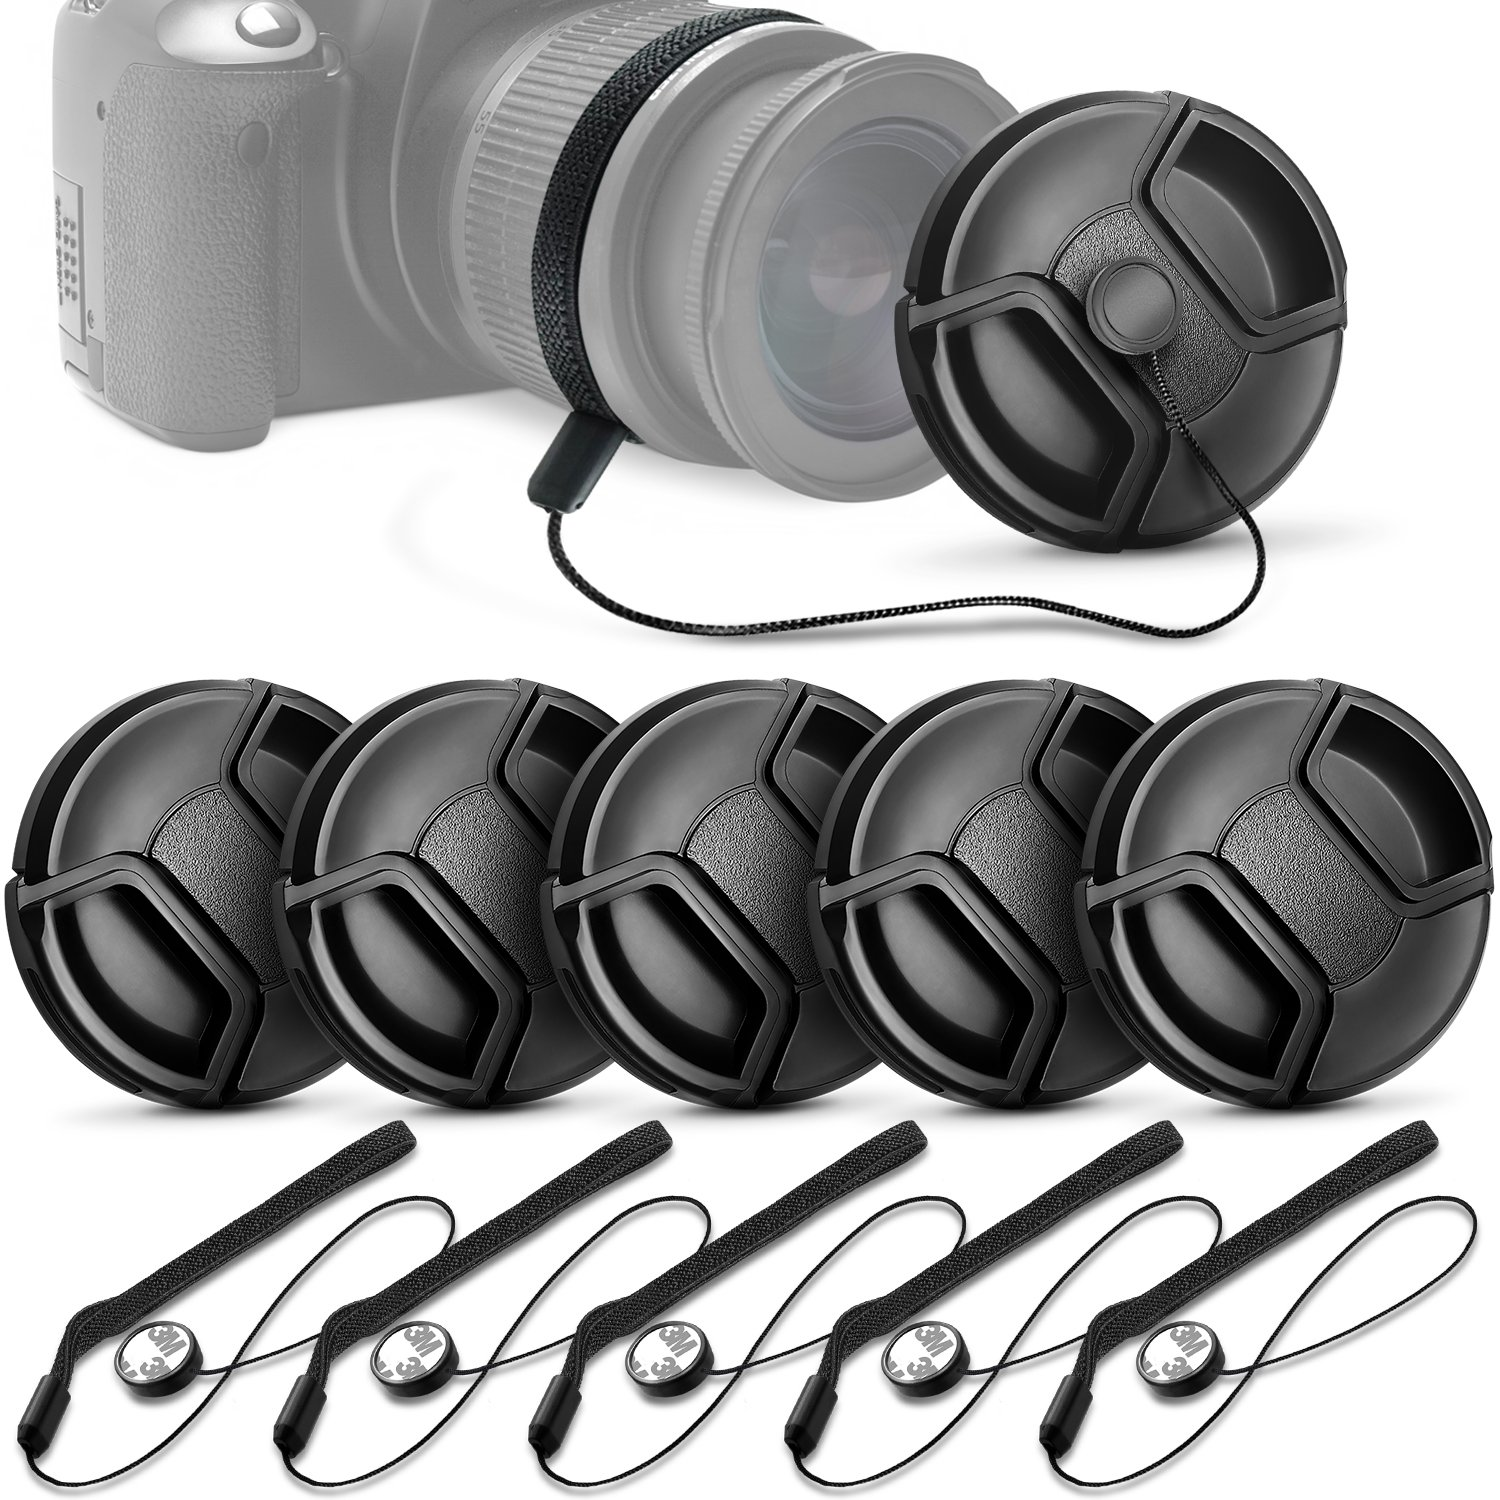 (10 Pcs Bundle) 5 Center Pinch Lens Cap (58mm) and 5 Cap Keeper Leash for Canon, Nikon, Sony and any other DSLR Camera Altura Photo QM0360